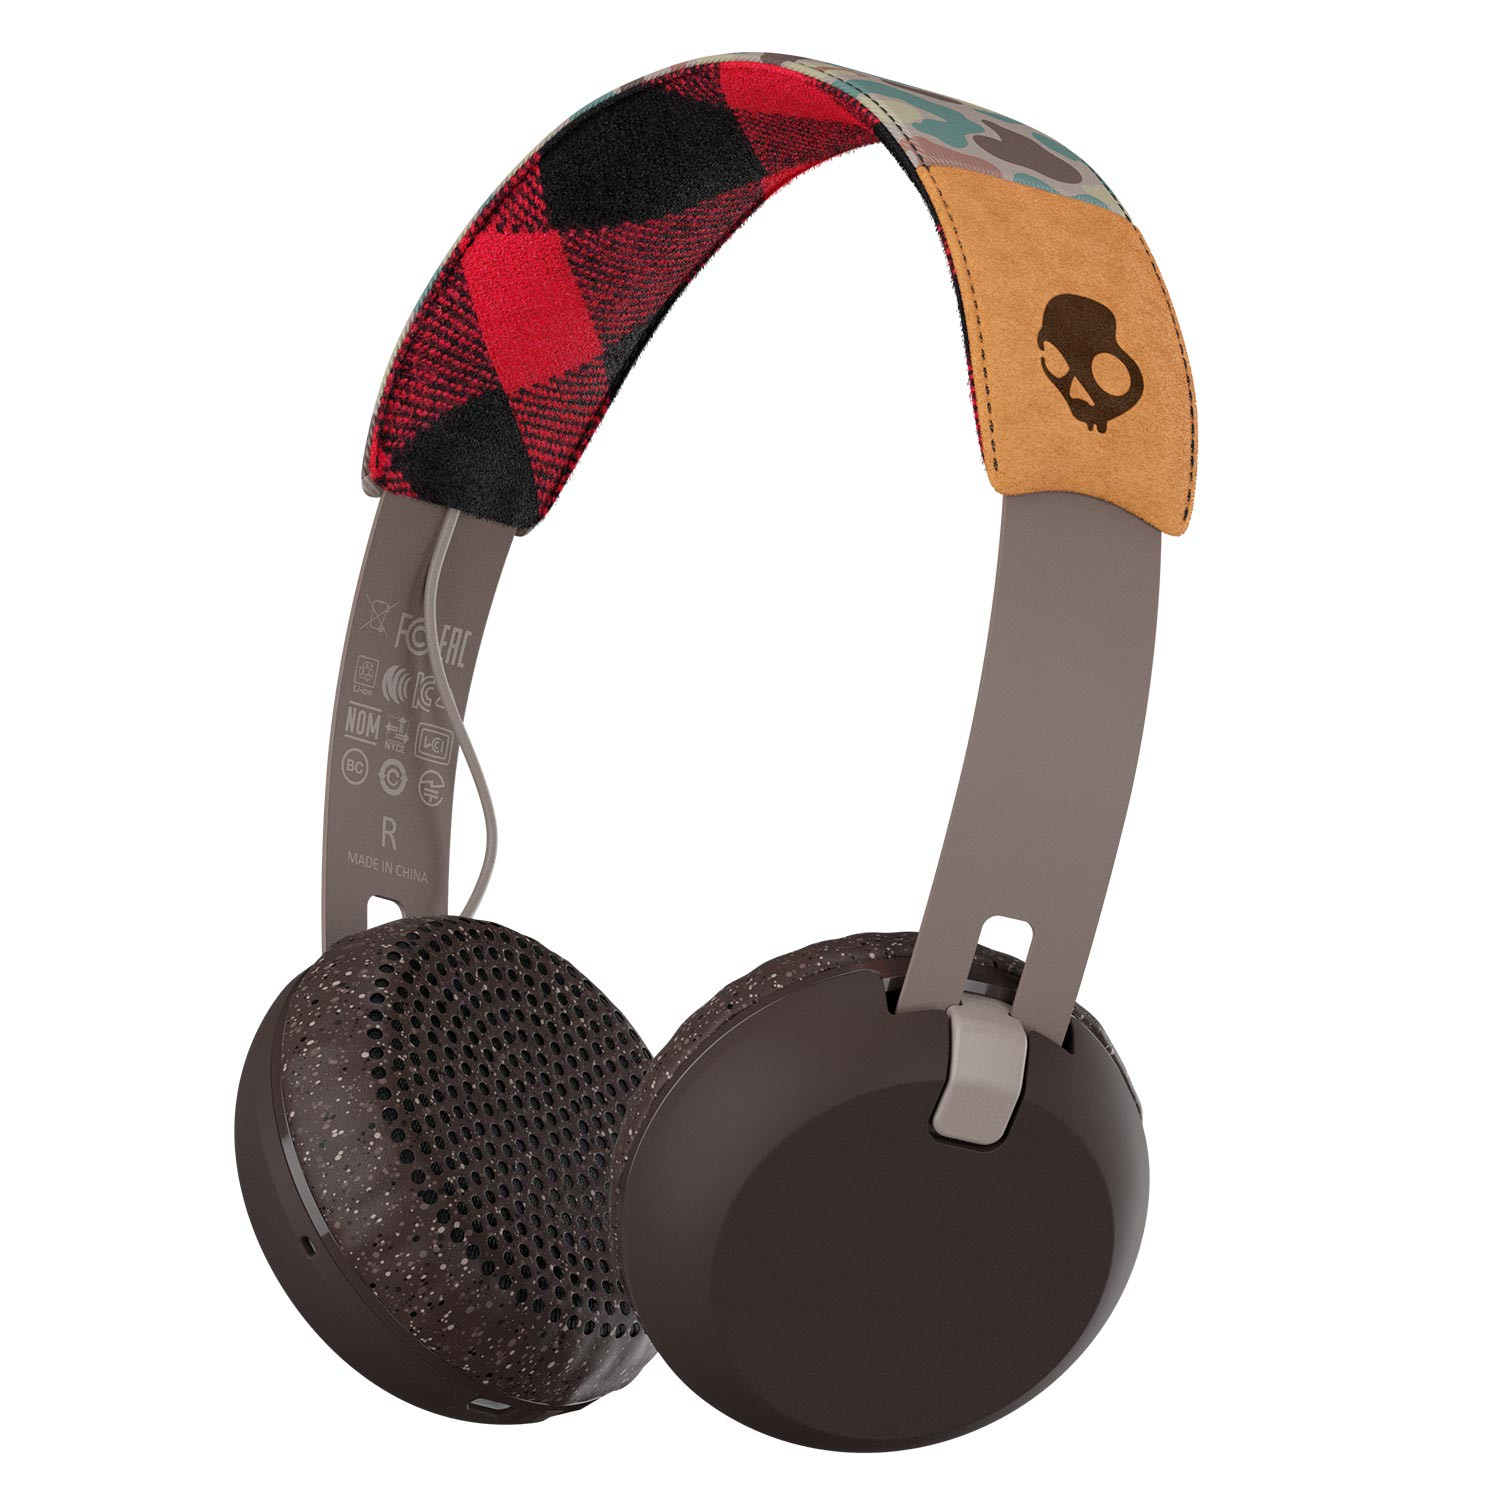 Sluchátka Skullcandy Grind Wireless grey/plaid